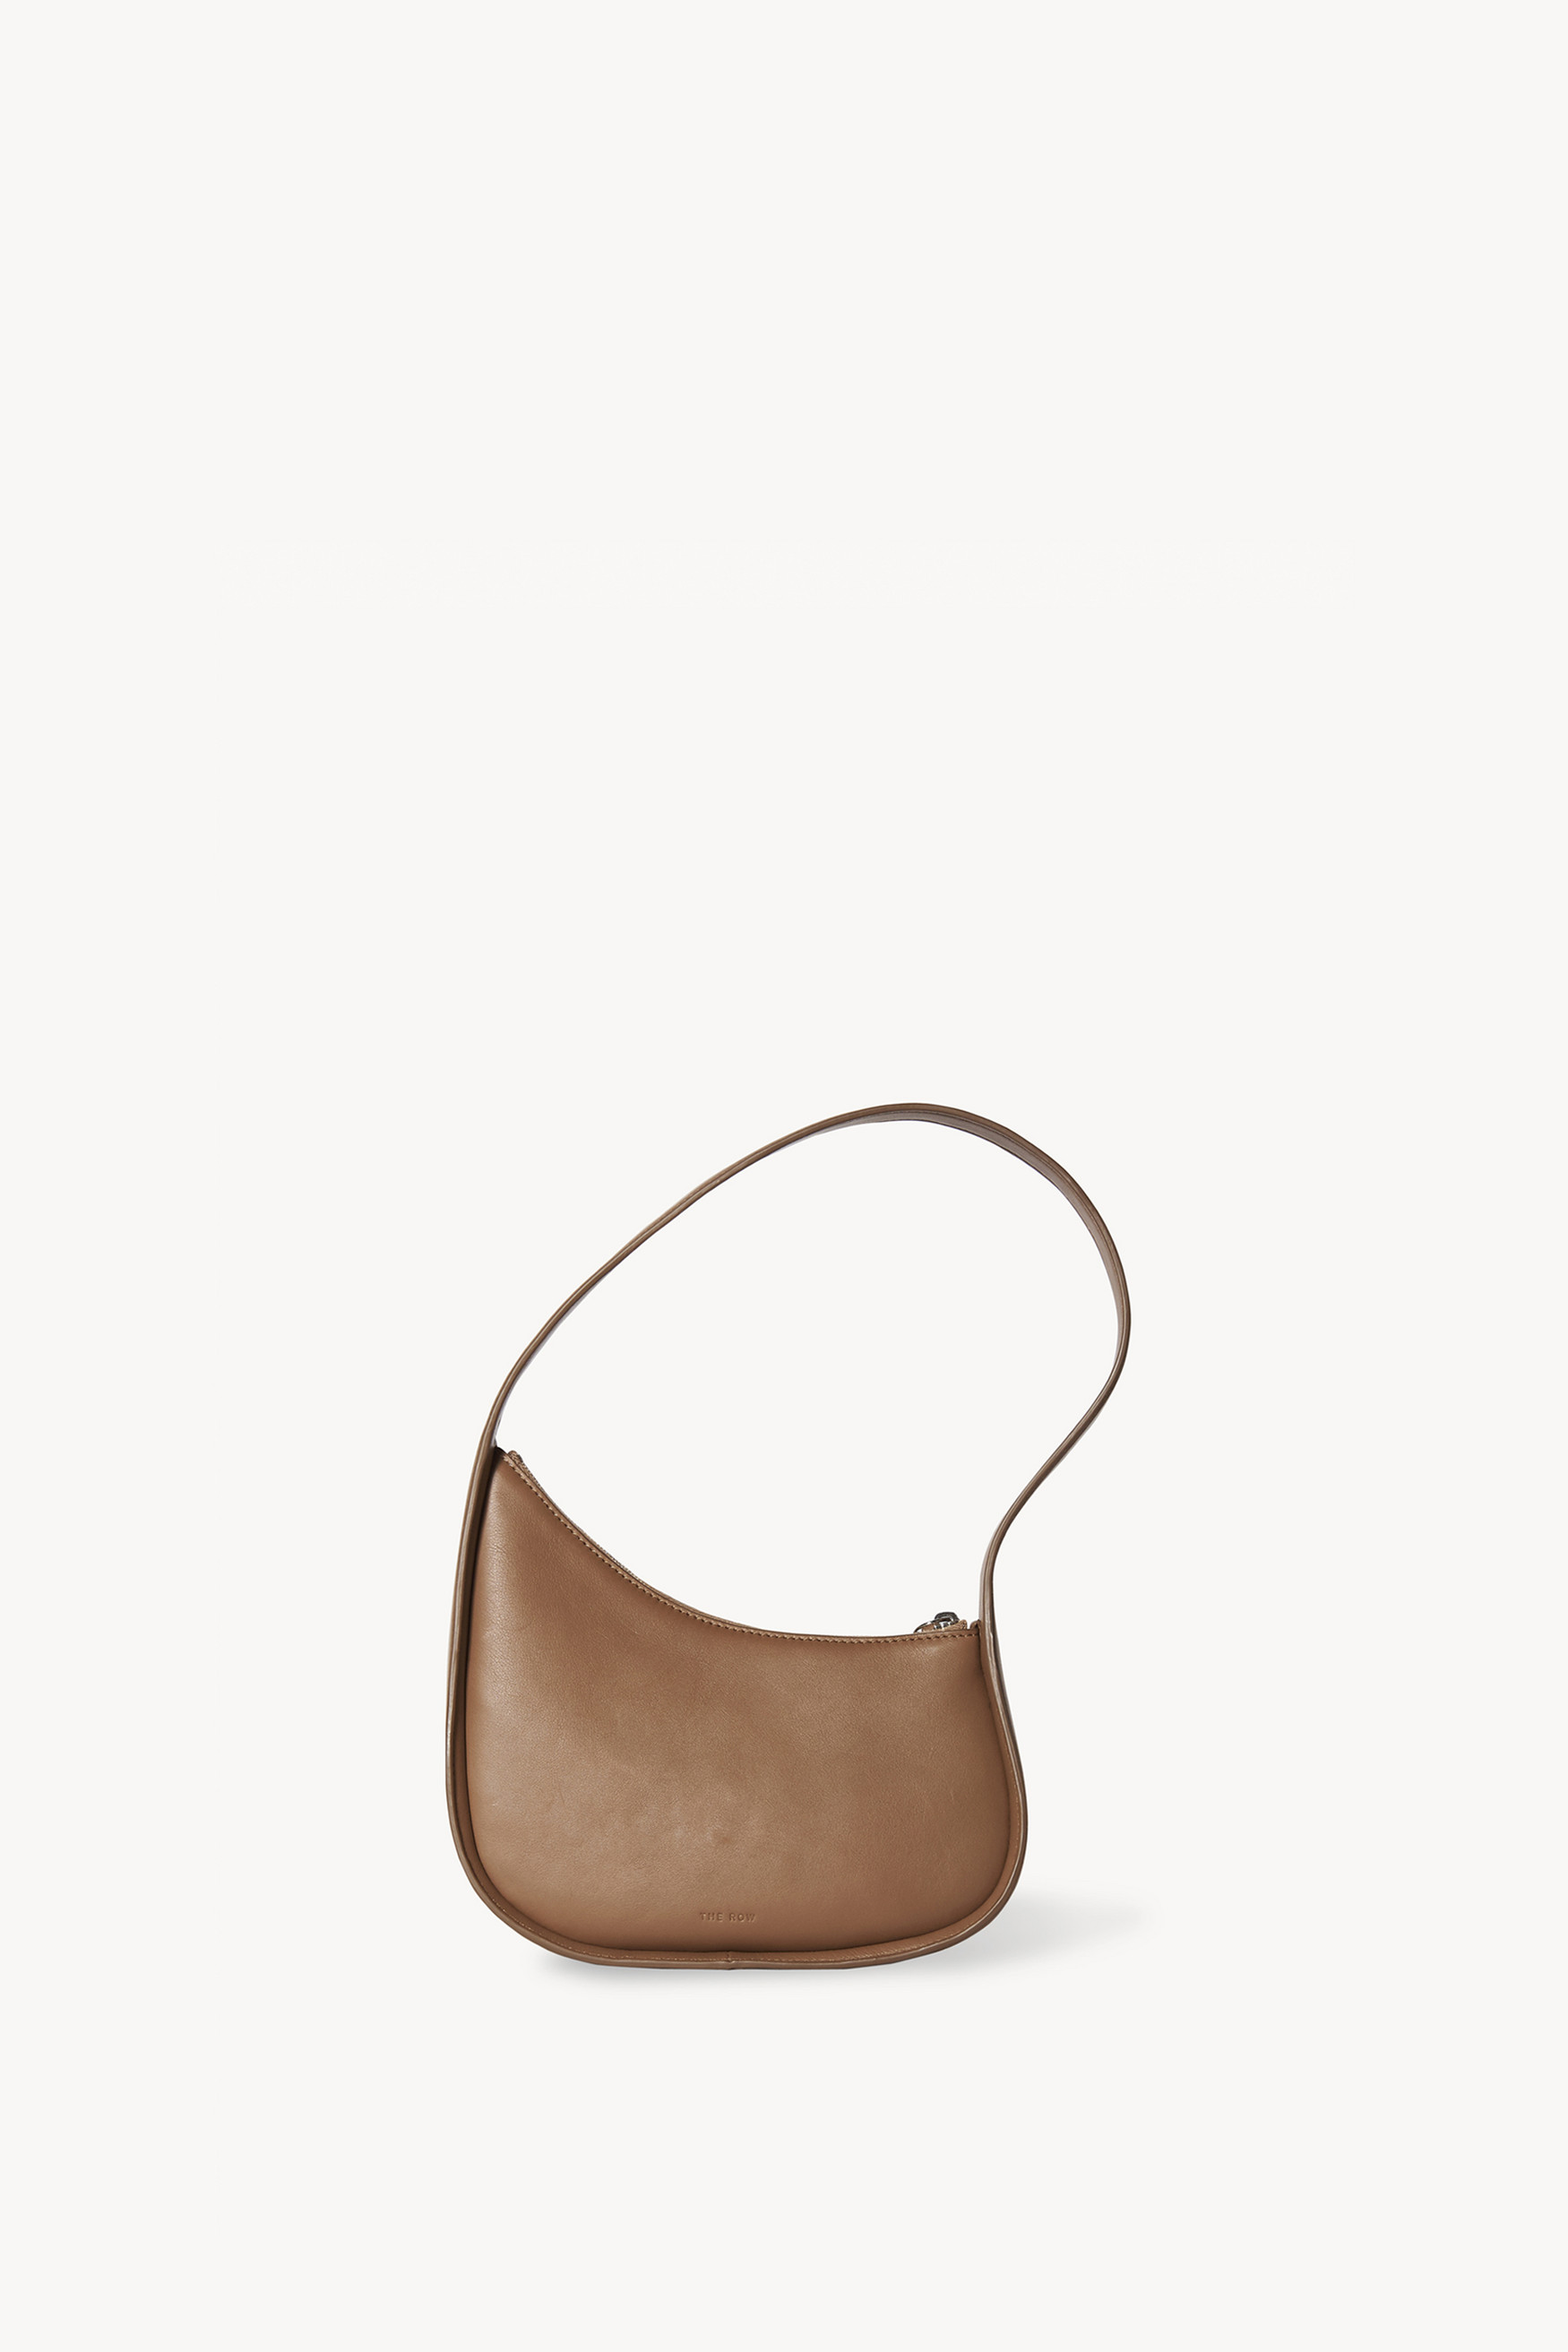 Half Moon Leather Shoulder Bag by The Row, available on saksfifthavenue.com for $1290 Kendall Jenner Bags Exact Product